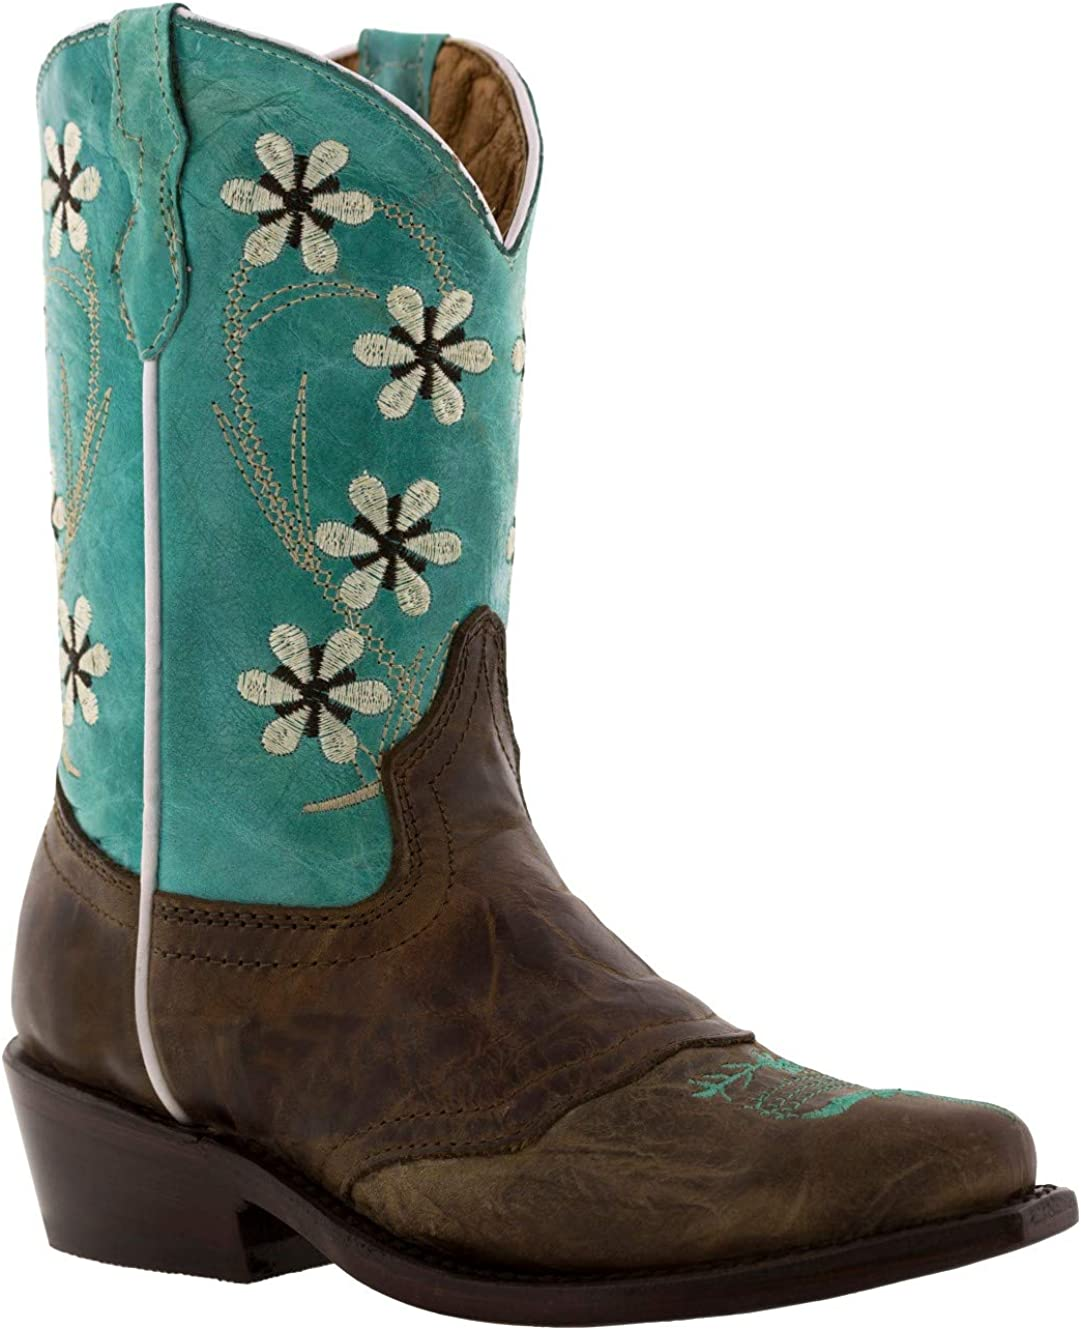 Veretta Boots - low-pricing Girl's Turquoise Brown Floral Challenge the lowest price of Japan Embroidered Cowg